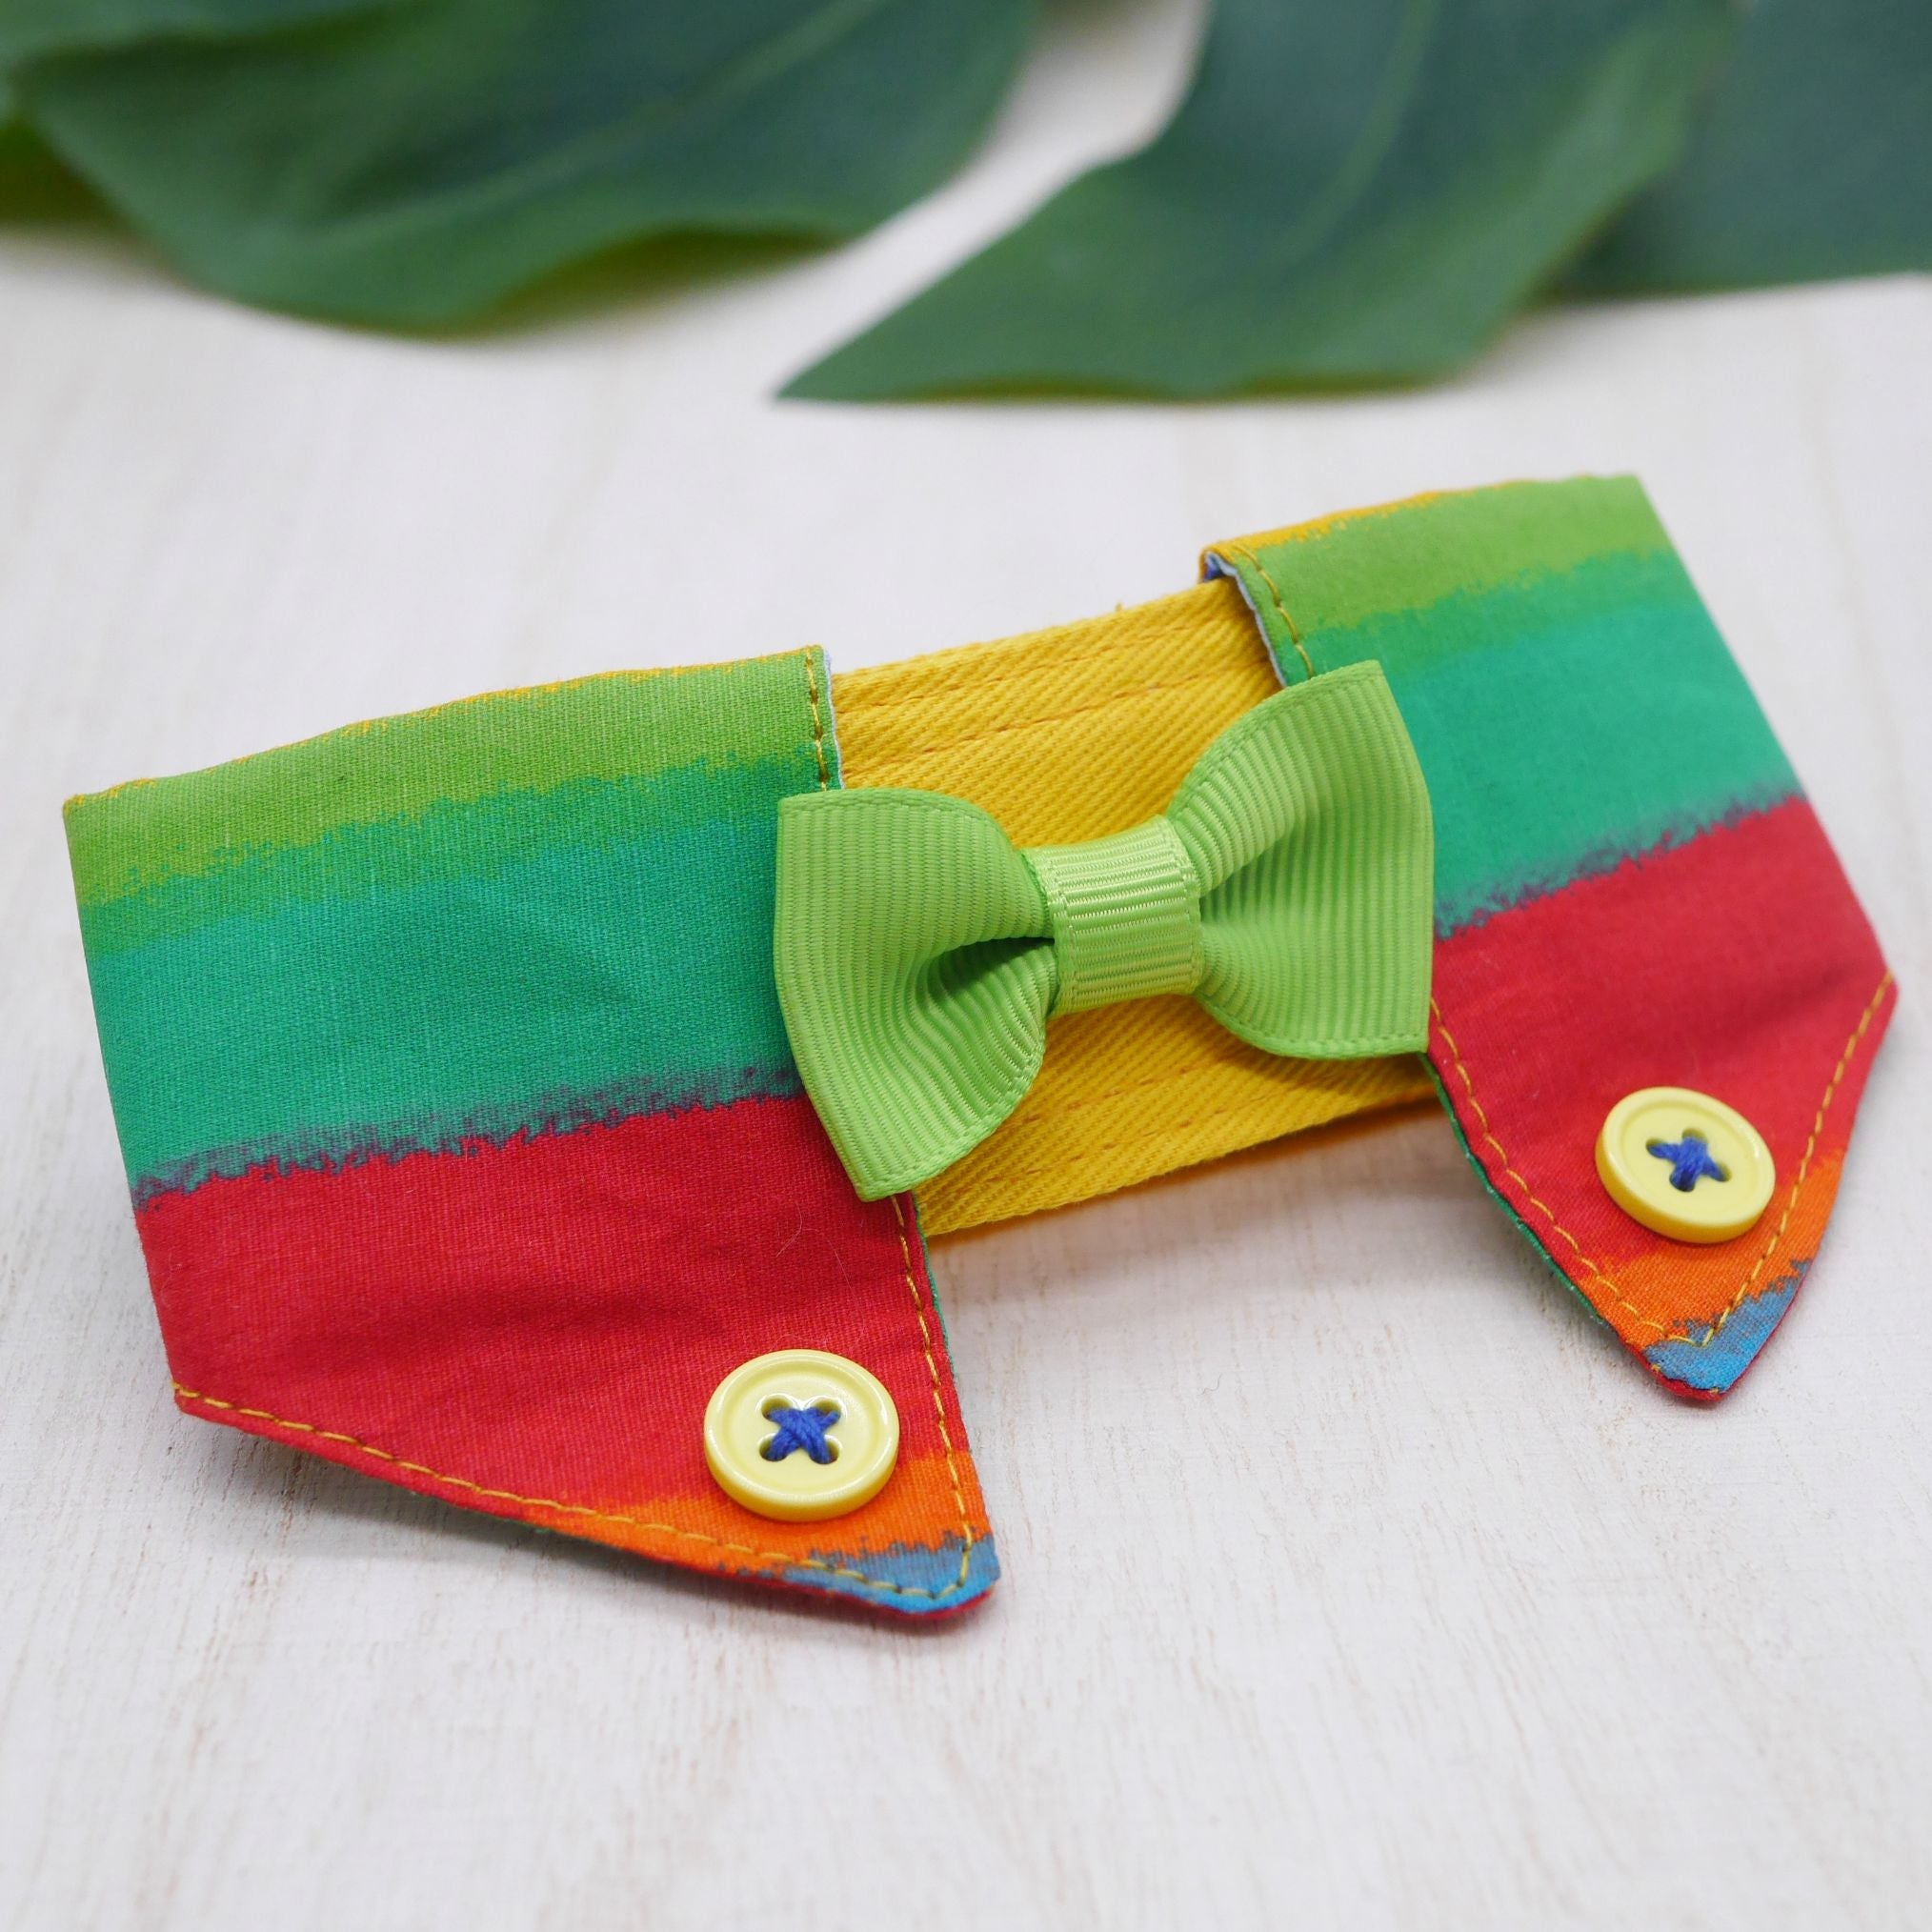 Dapper Collar - Rainbow Kiss - The Pet's Couture